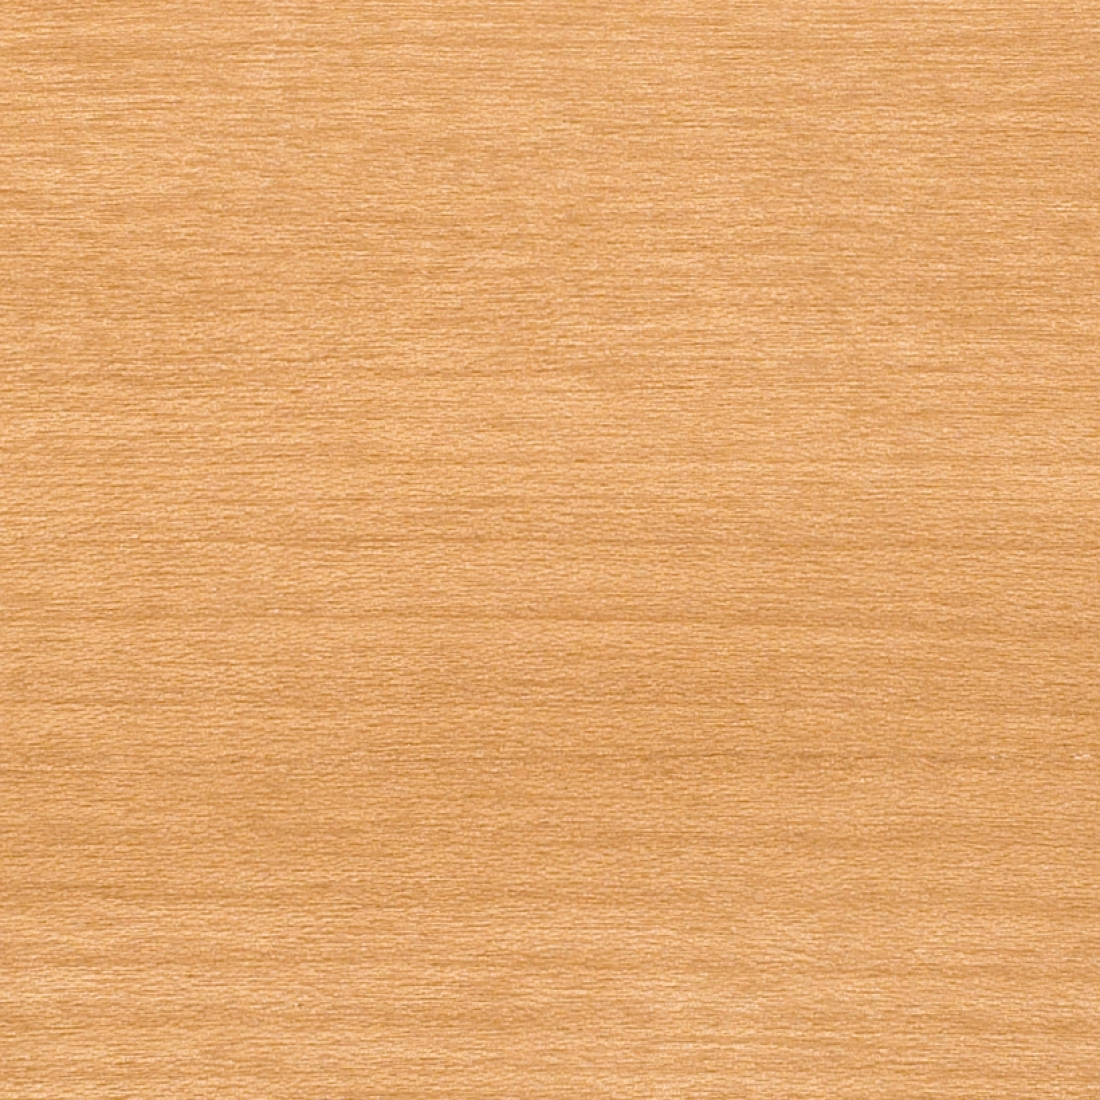 Wood Veneer SMW Honey Maple